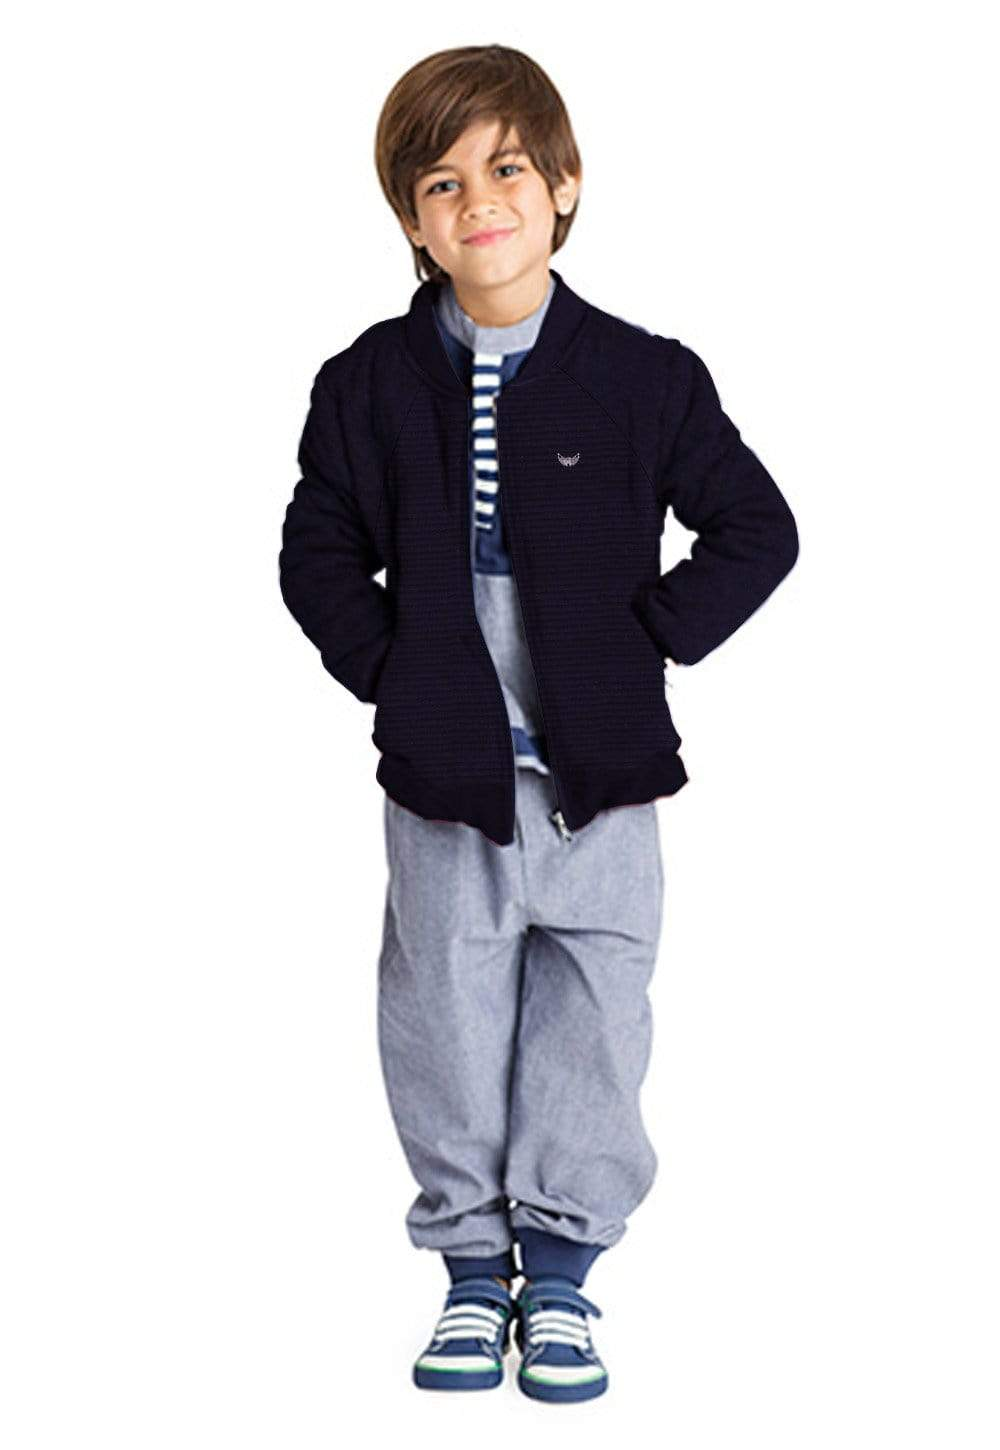 cotton sensations Boy's Zipper Dark Navy / 3-4 Years Boy's Cotton Sensations Dark Navy Zipper